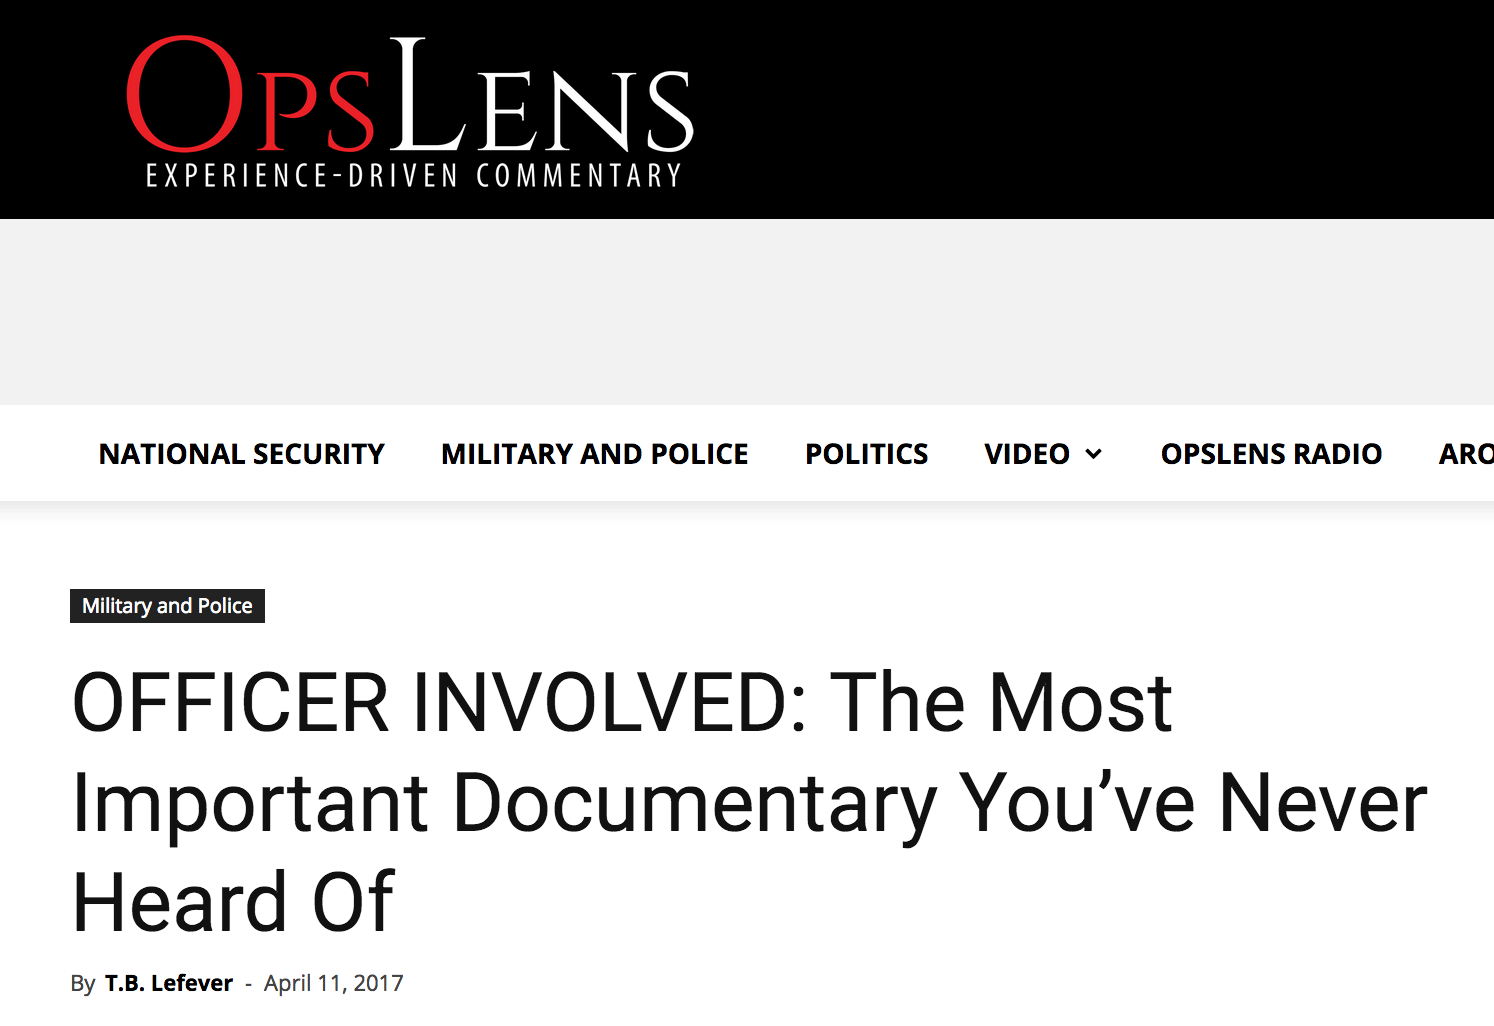 Officer Involved: The Most Important Documentary You've Never Heard Of   OpsLens